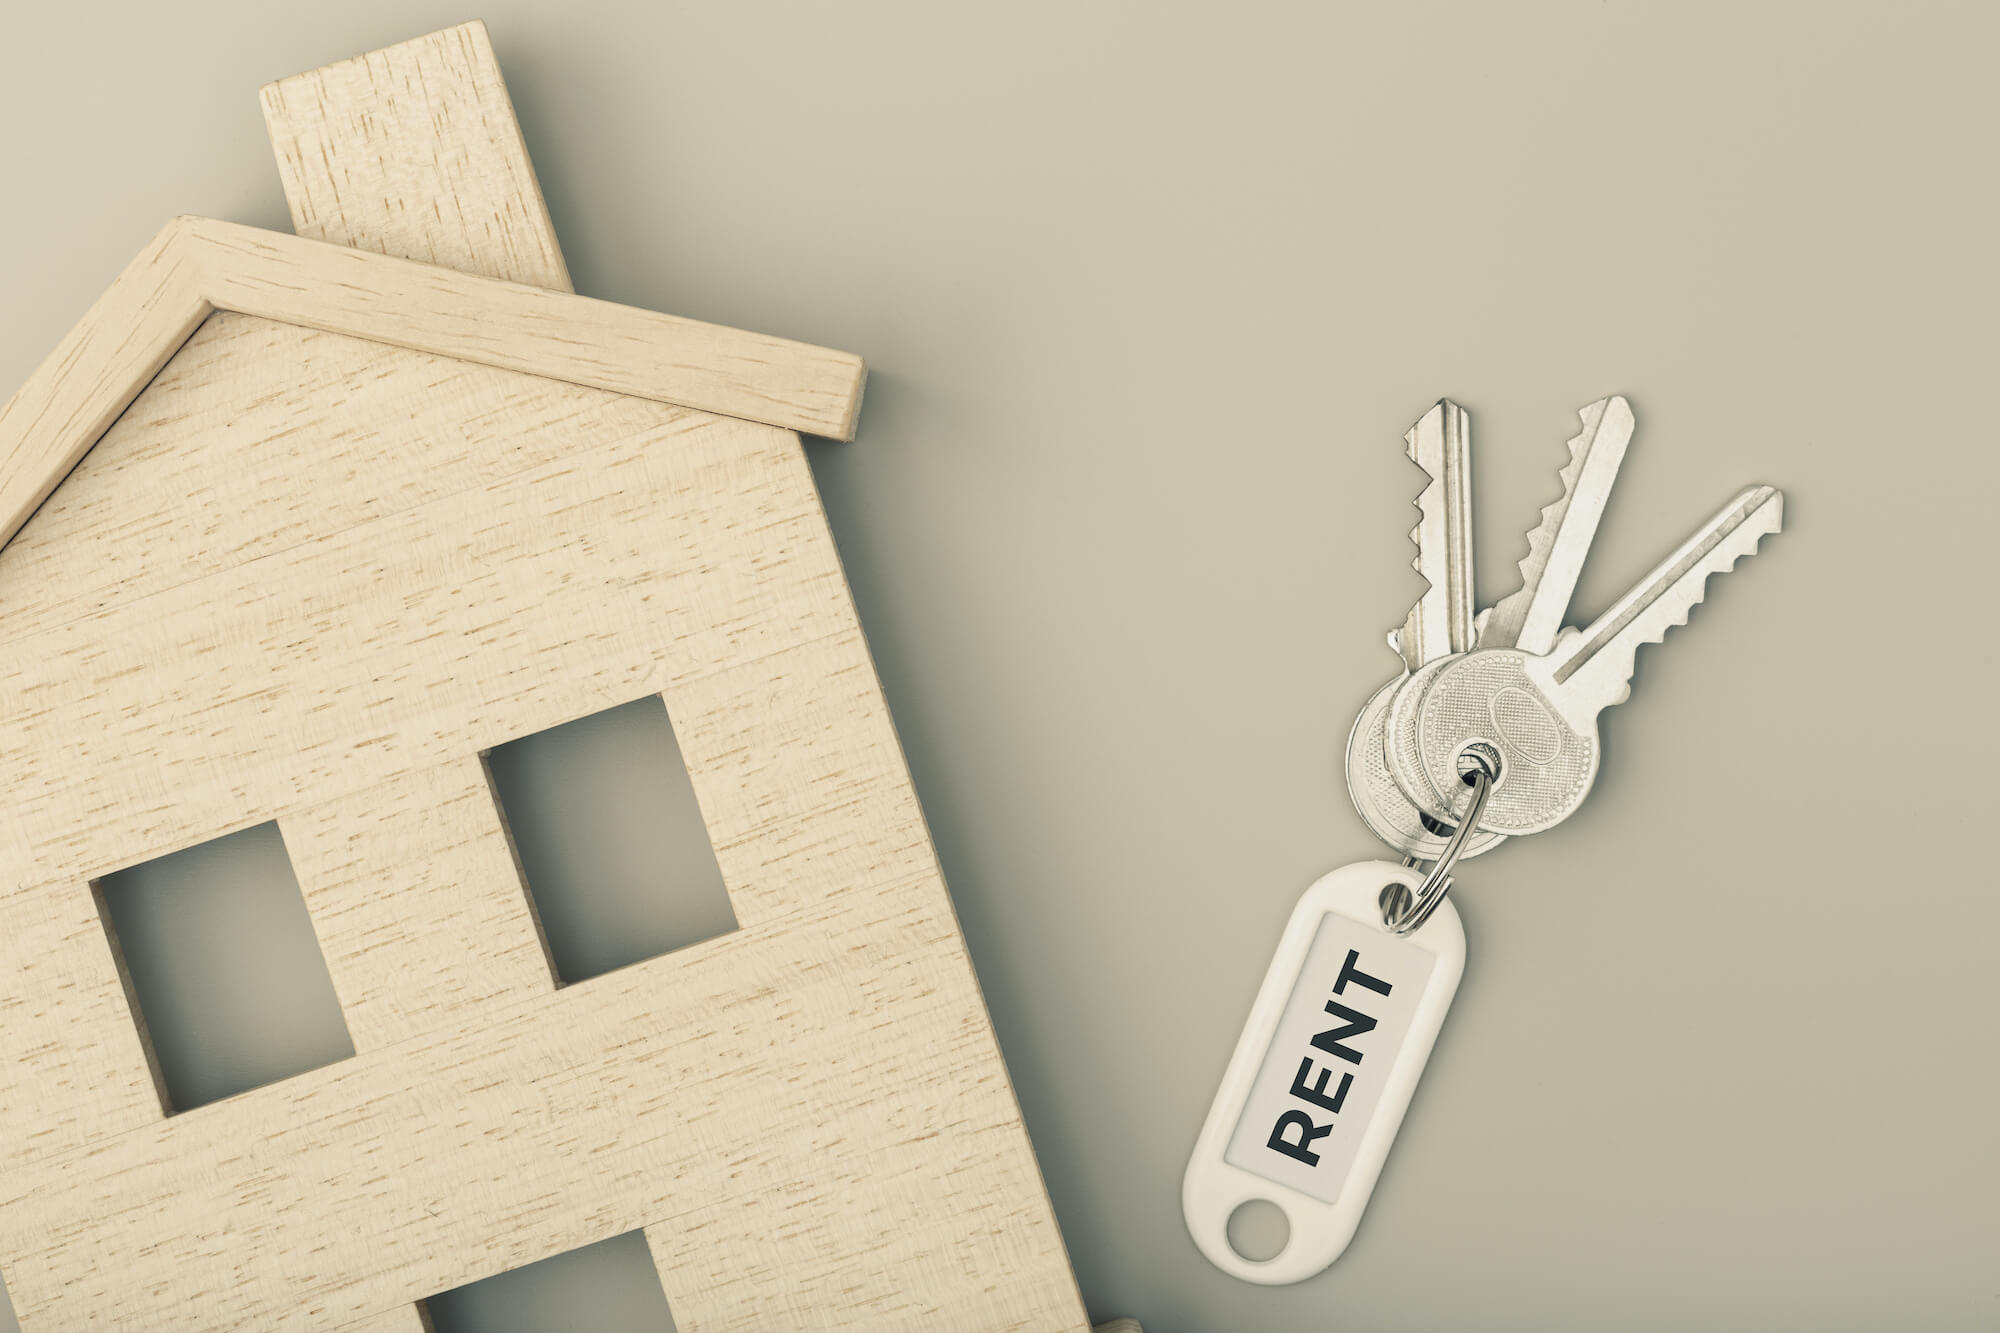 Model house and set of keys for tenants rights in Victoria